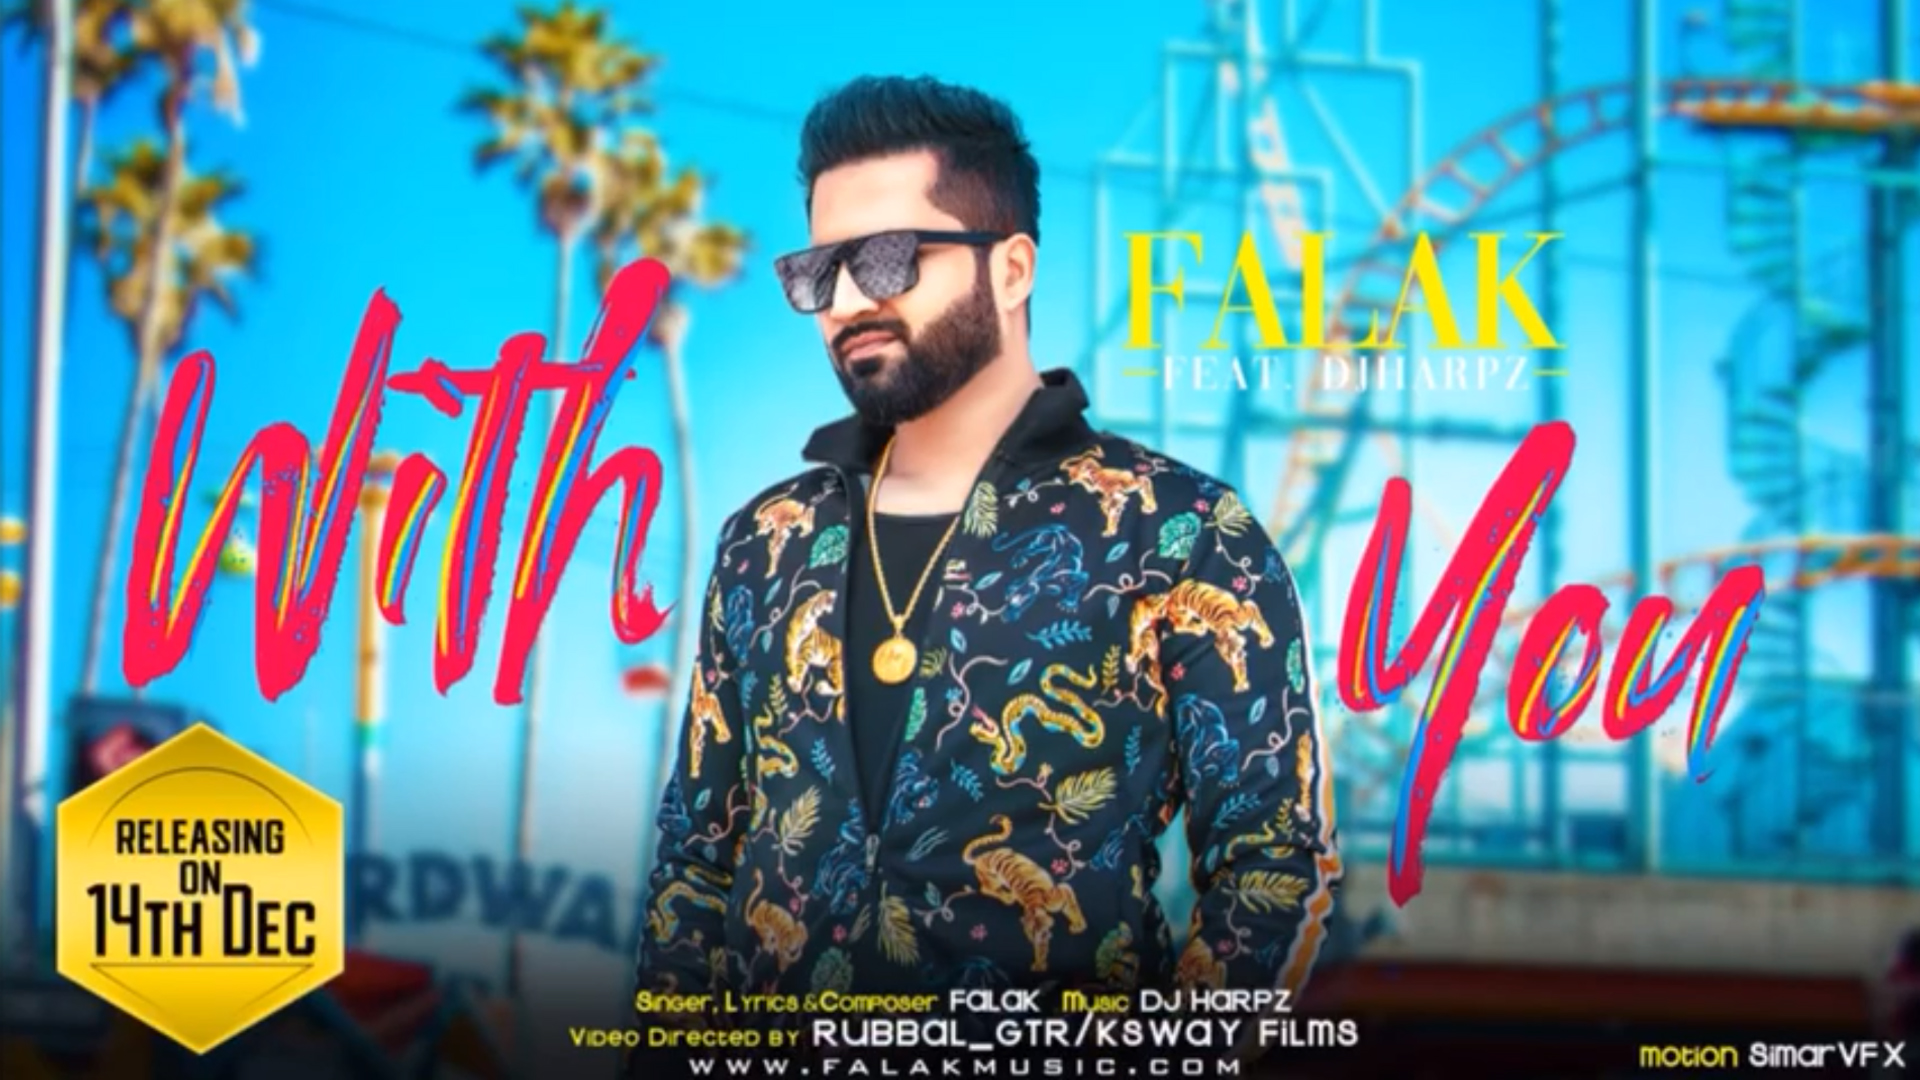 With-You-ft.-DJ-Harpz